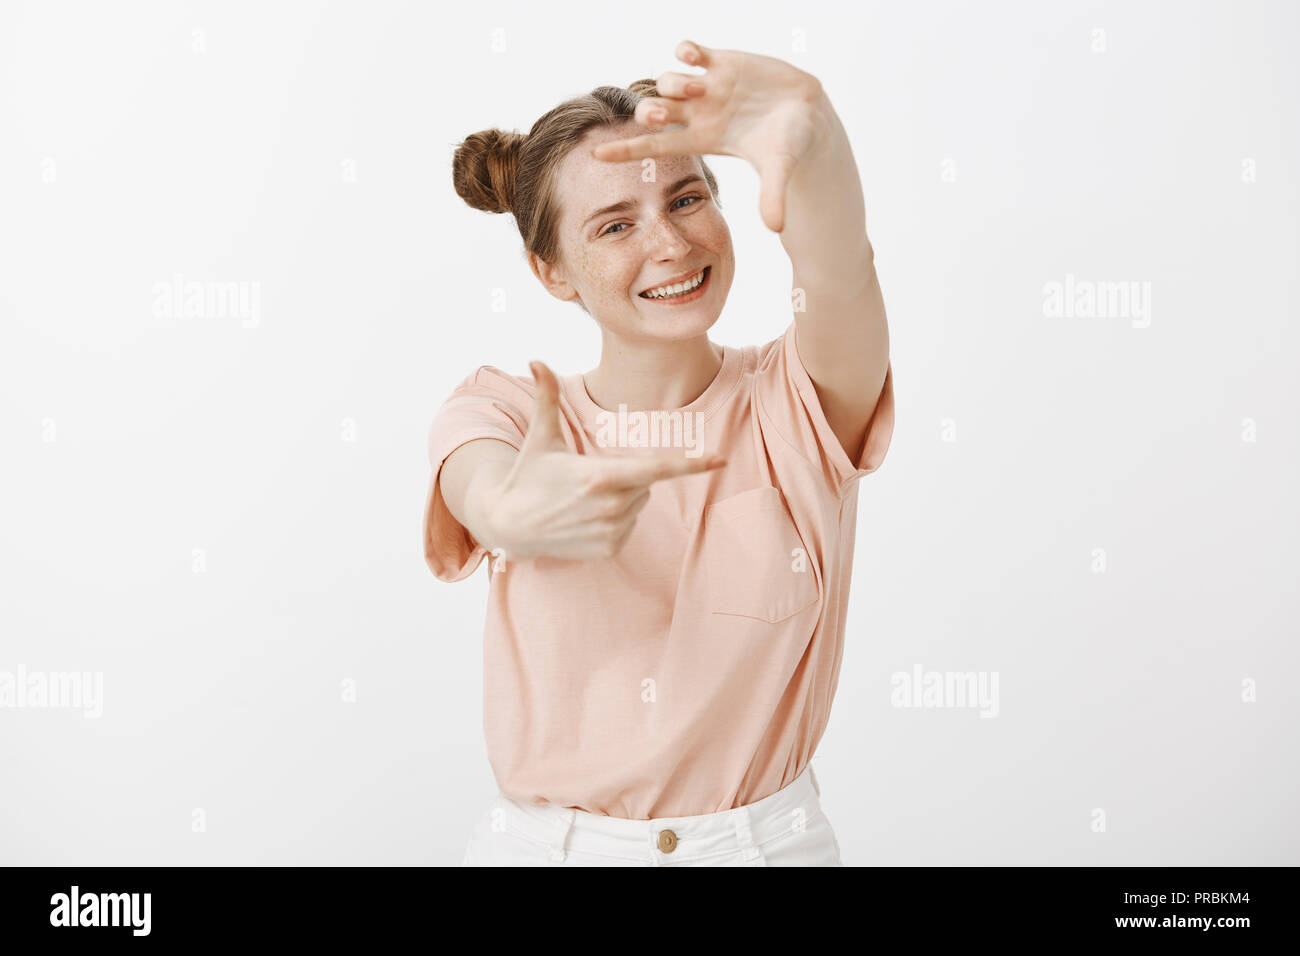 Carefree Stylish Feminine Girl With Buns Hairstyle In Trendy Clothes